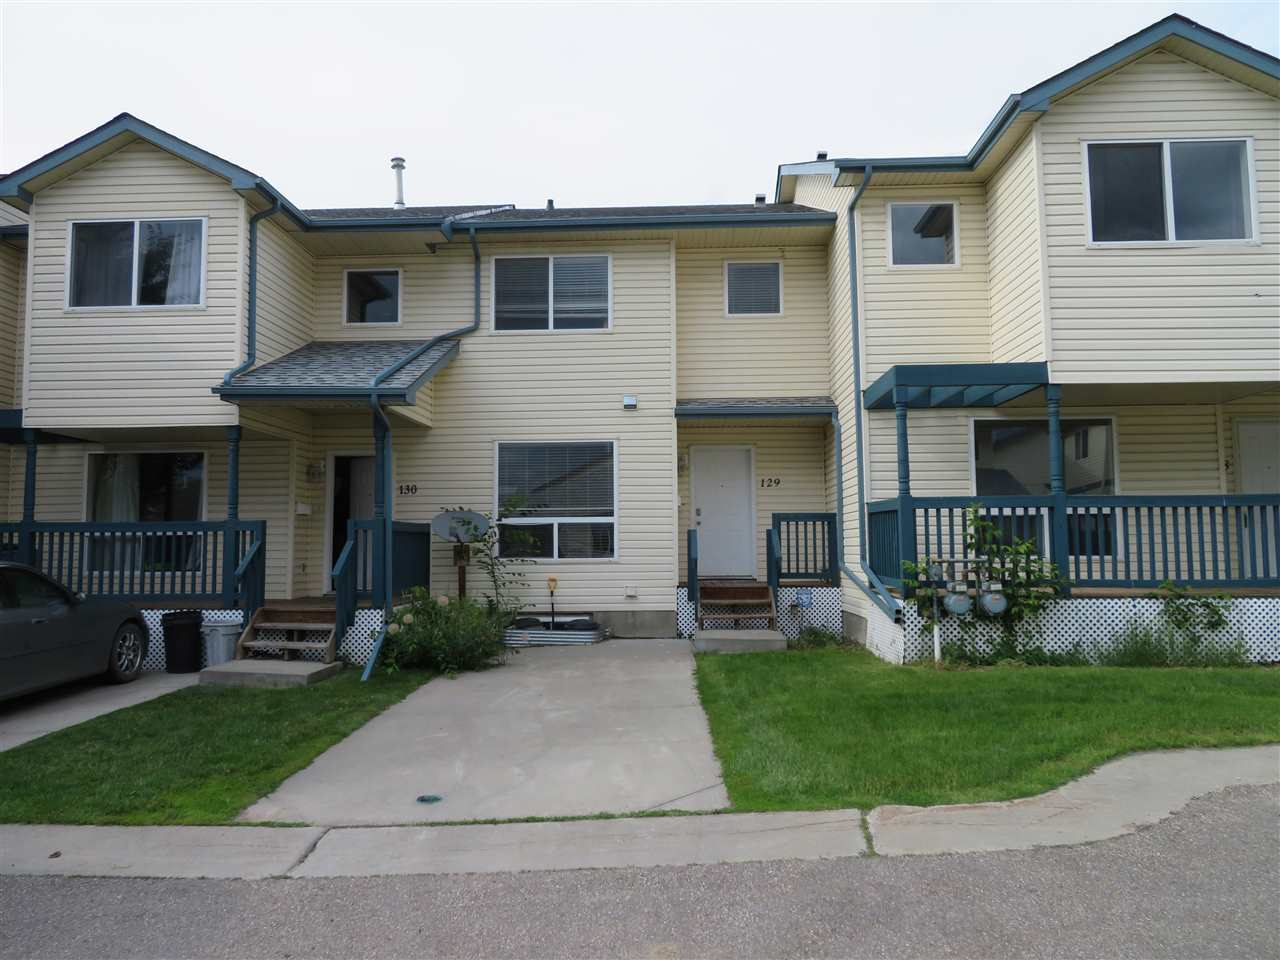 MLS® listing #E4164659 for sale located at 129 10909 106 Street